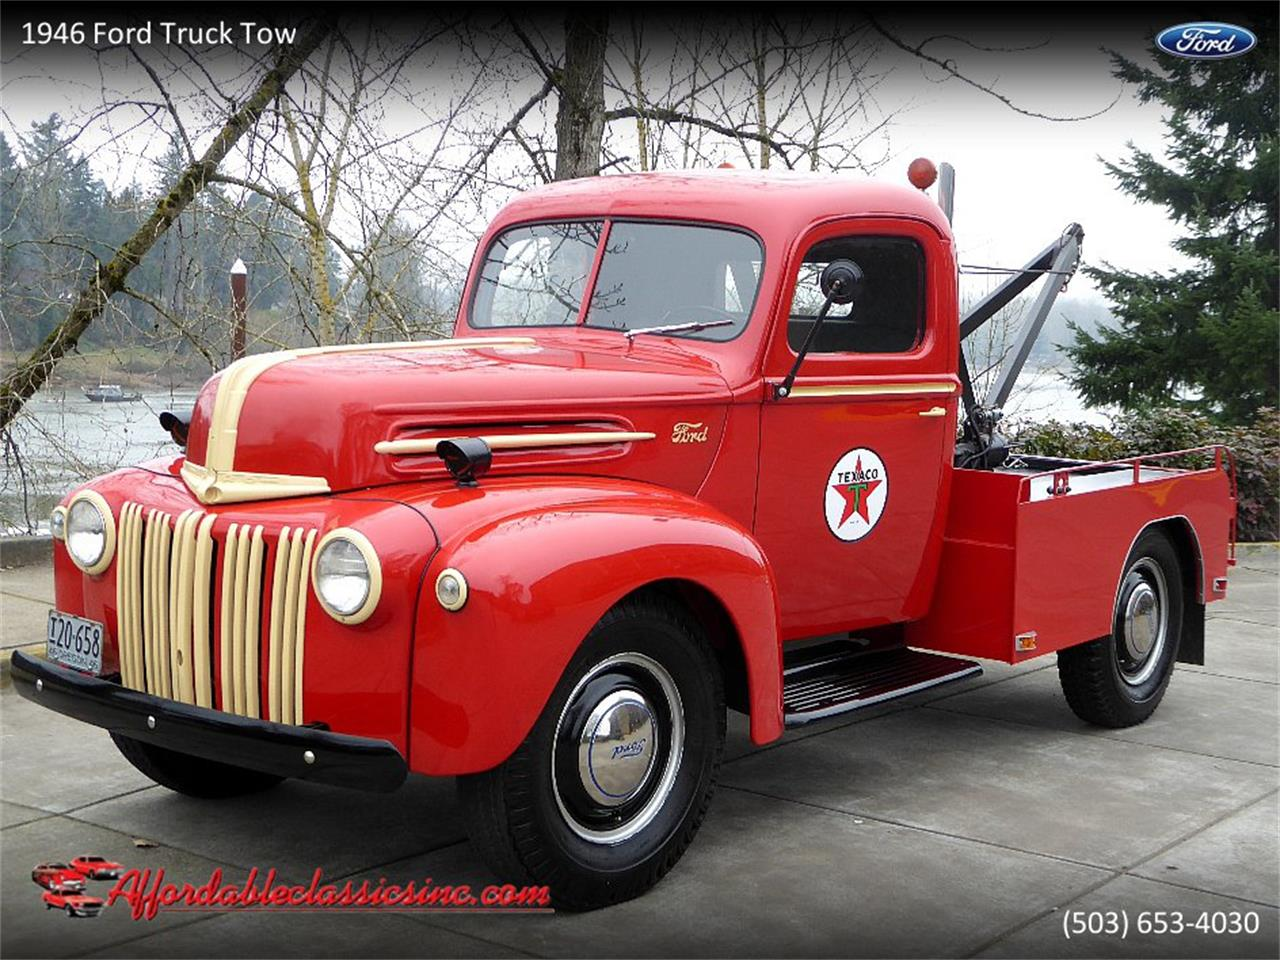 For Sale: 1946 Ford Tow Truck in Gladstone, Oregon